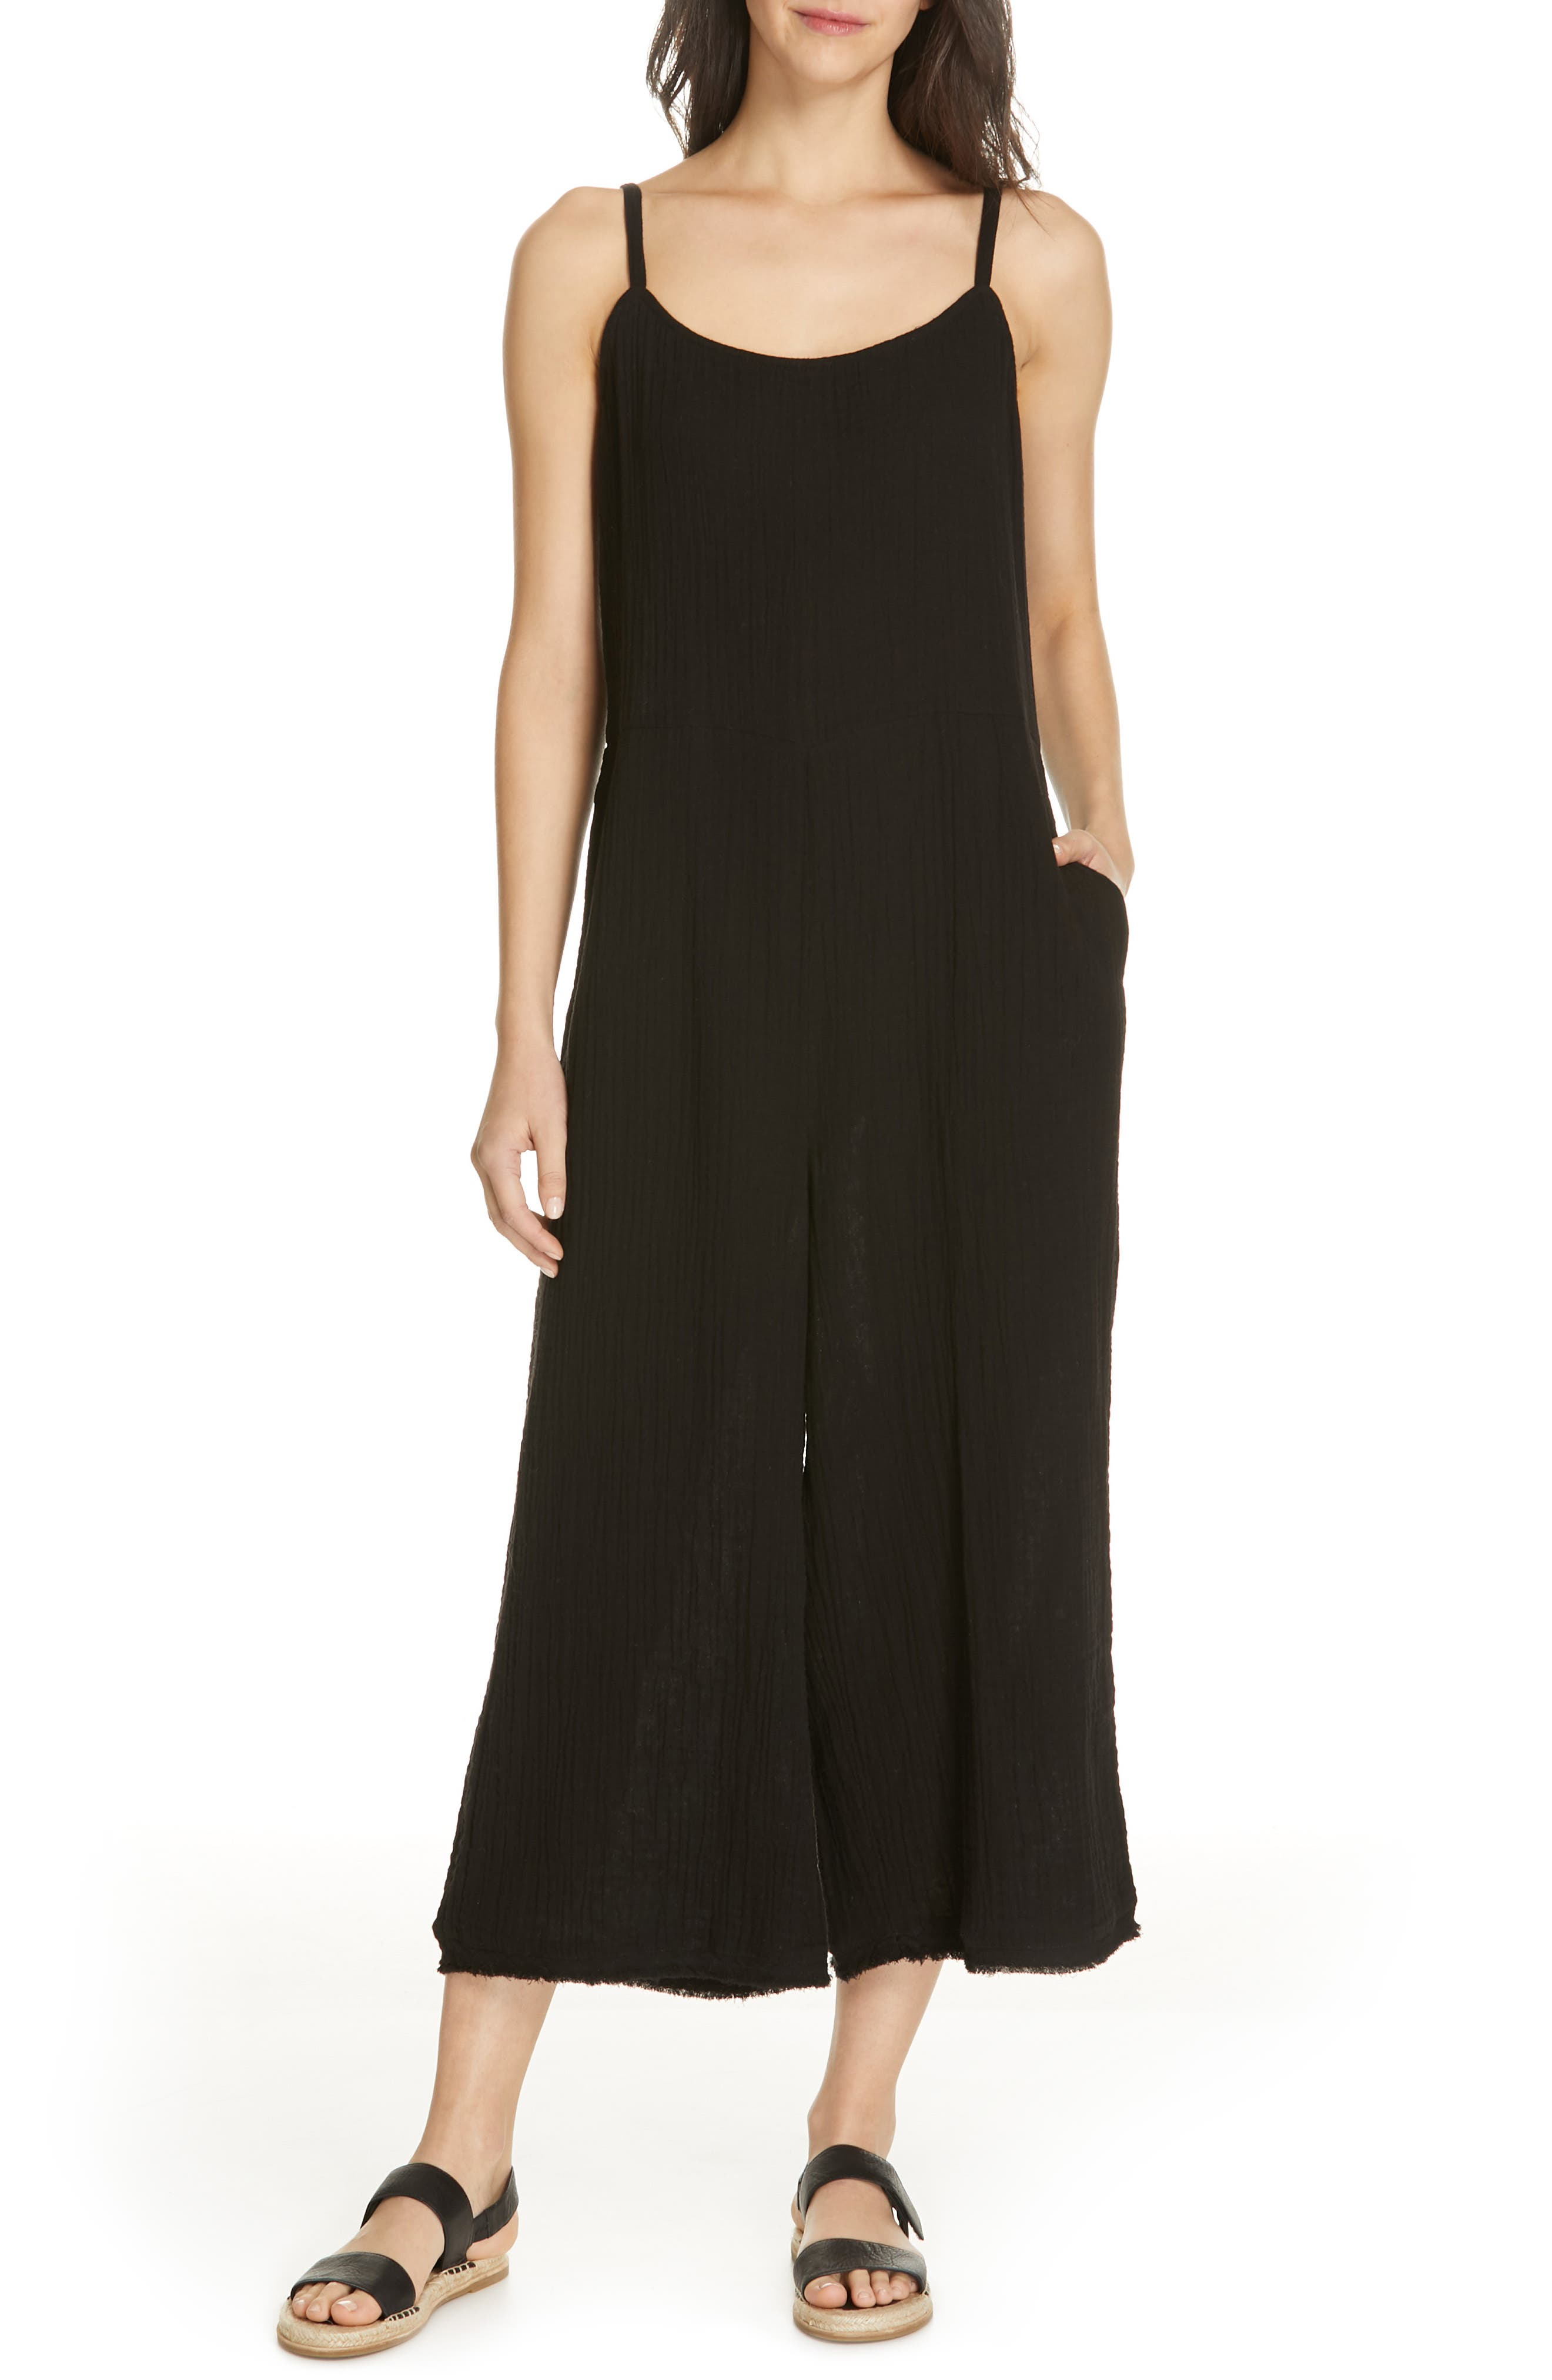 EILEEN FISHER, Camisole Jumpsuit, Main thumbnail 1, color, 001